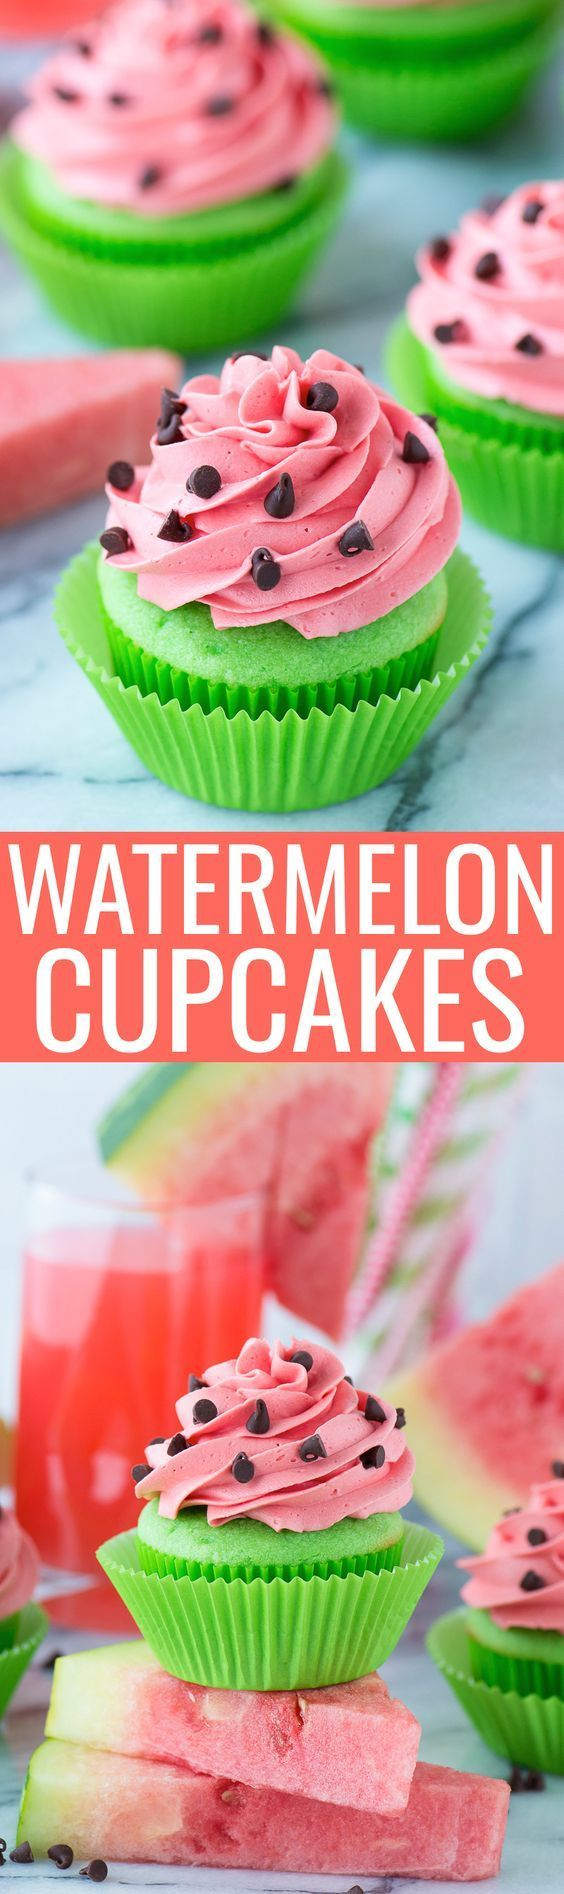 Watermelon Cupcakes! Bright green cupcakes with buttercream that tastes like watermelon! Add mini chocolate chips for the watermelon seeds!